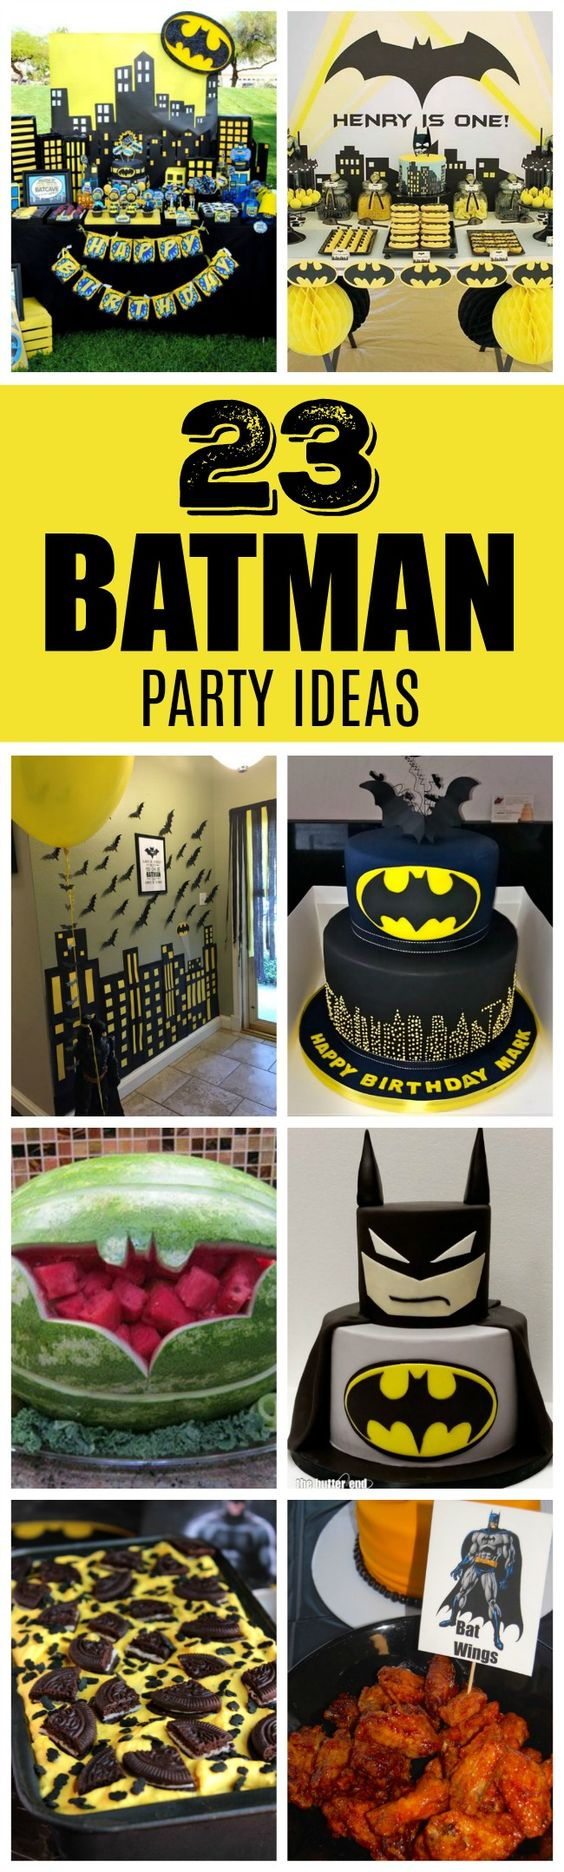 23 Incredible Batman Party Ideas - Pretty My Party